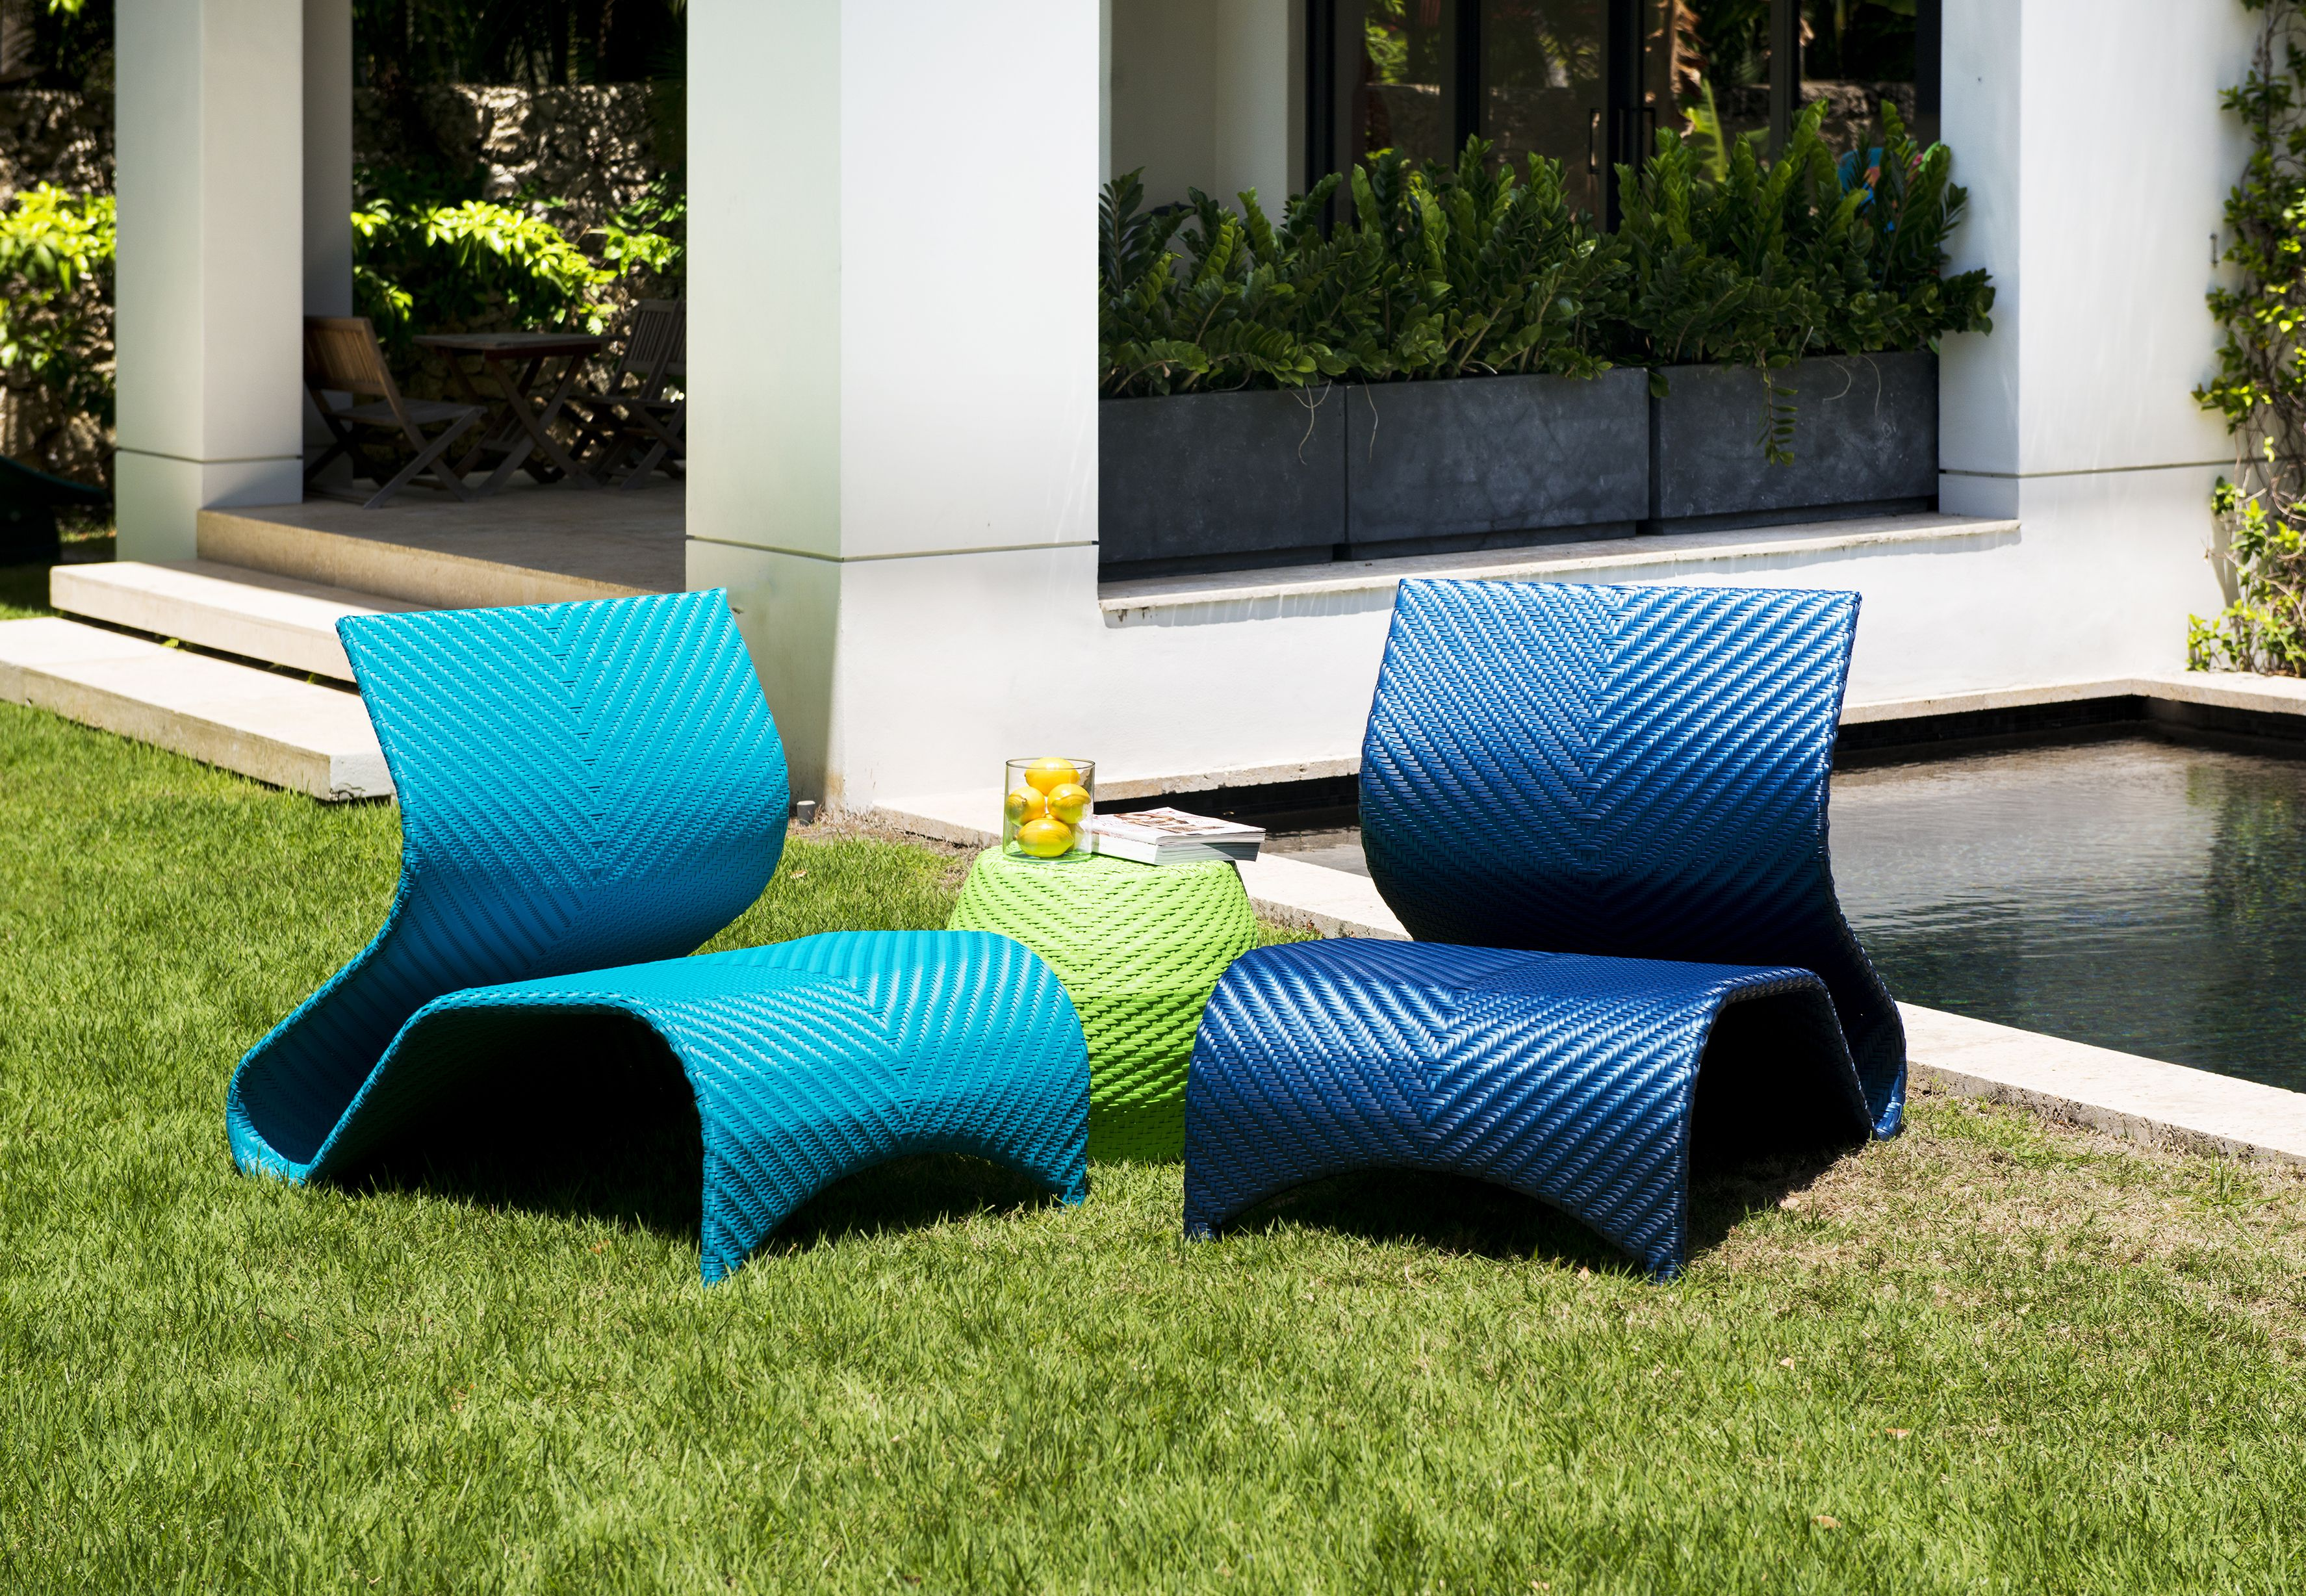 Prime Maui Chair Kannoa Maui Collection Outdoor Furniture Best Image Libraries Weasiibadanjobscom